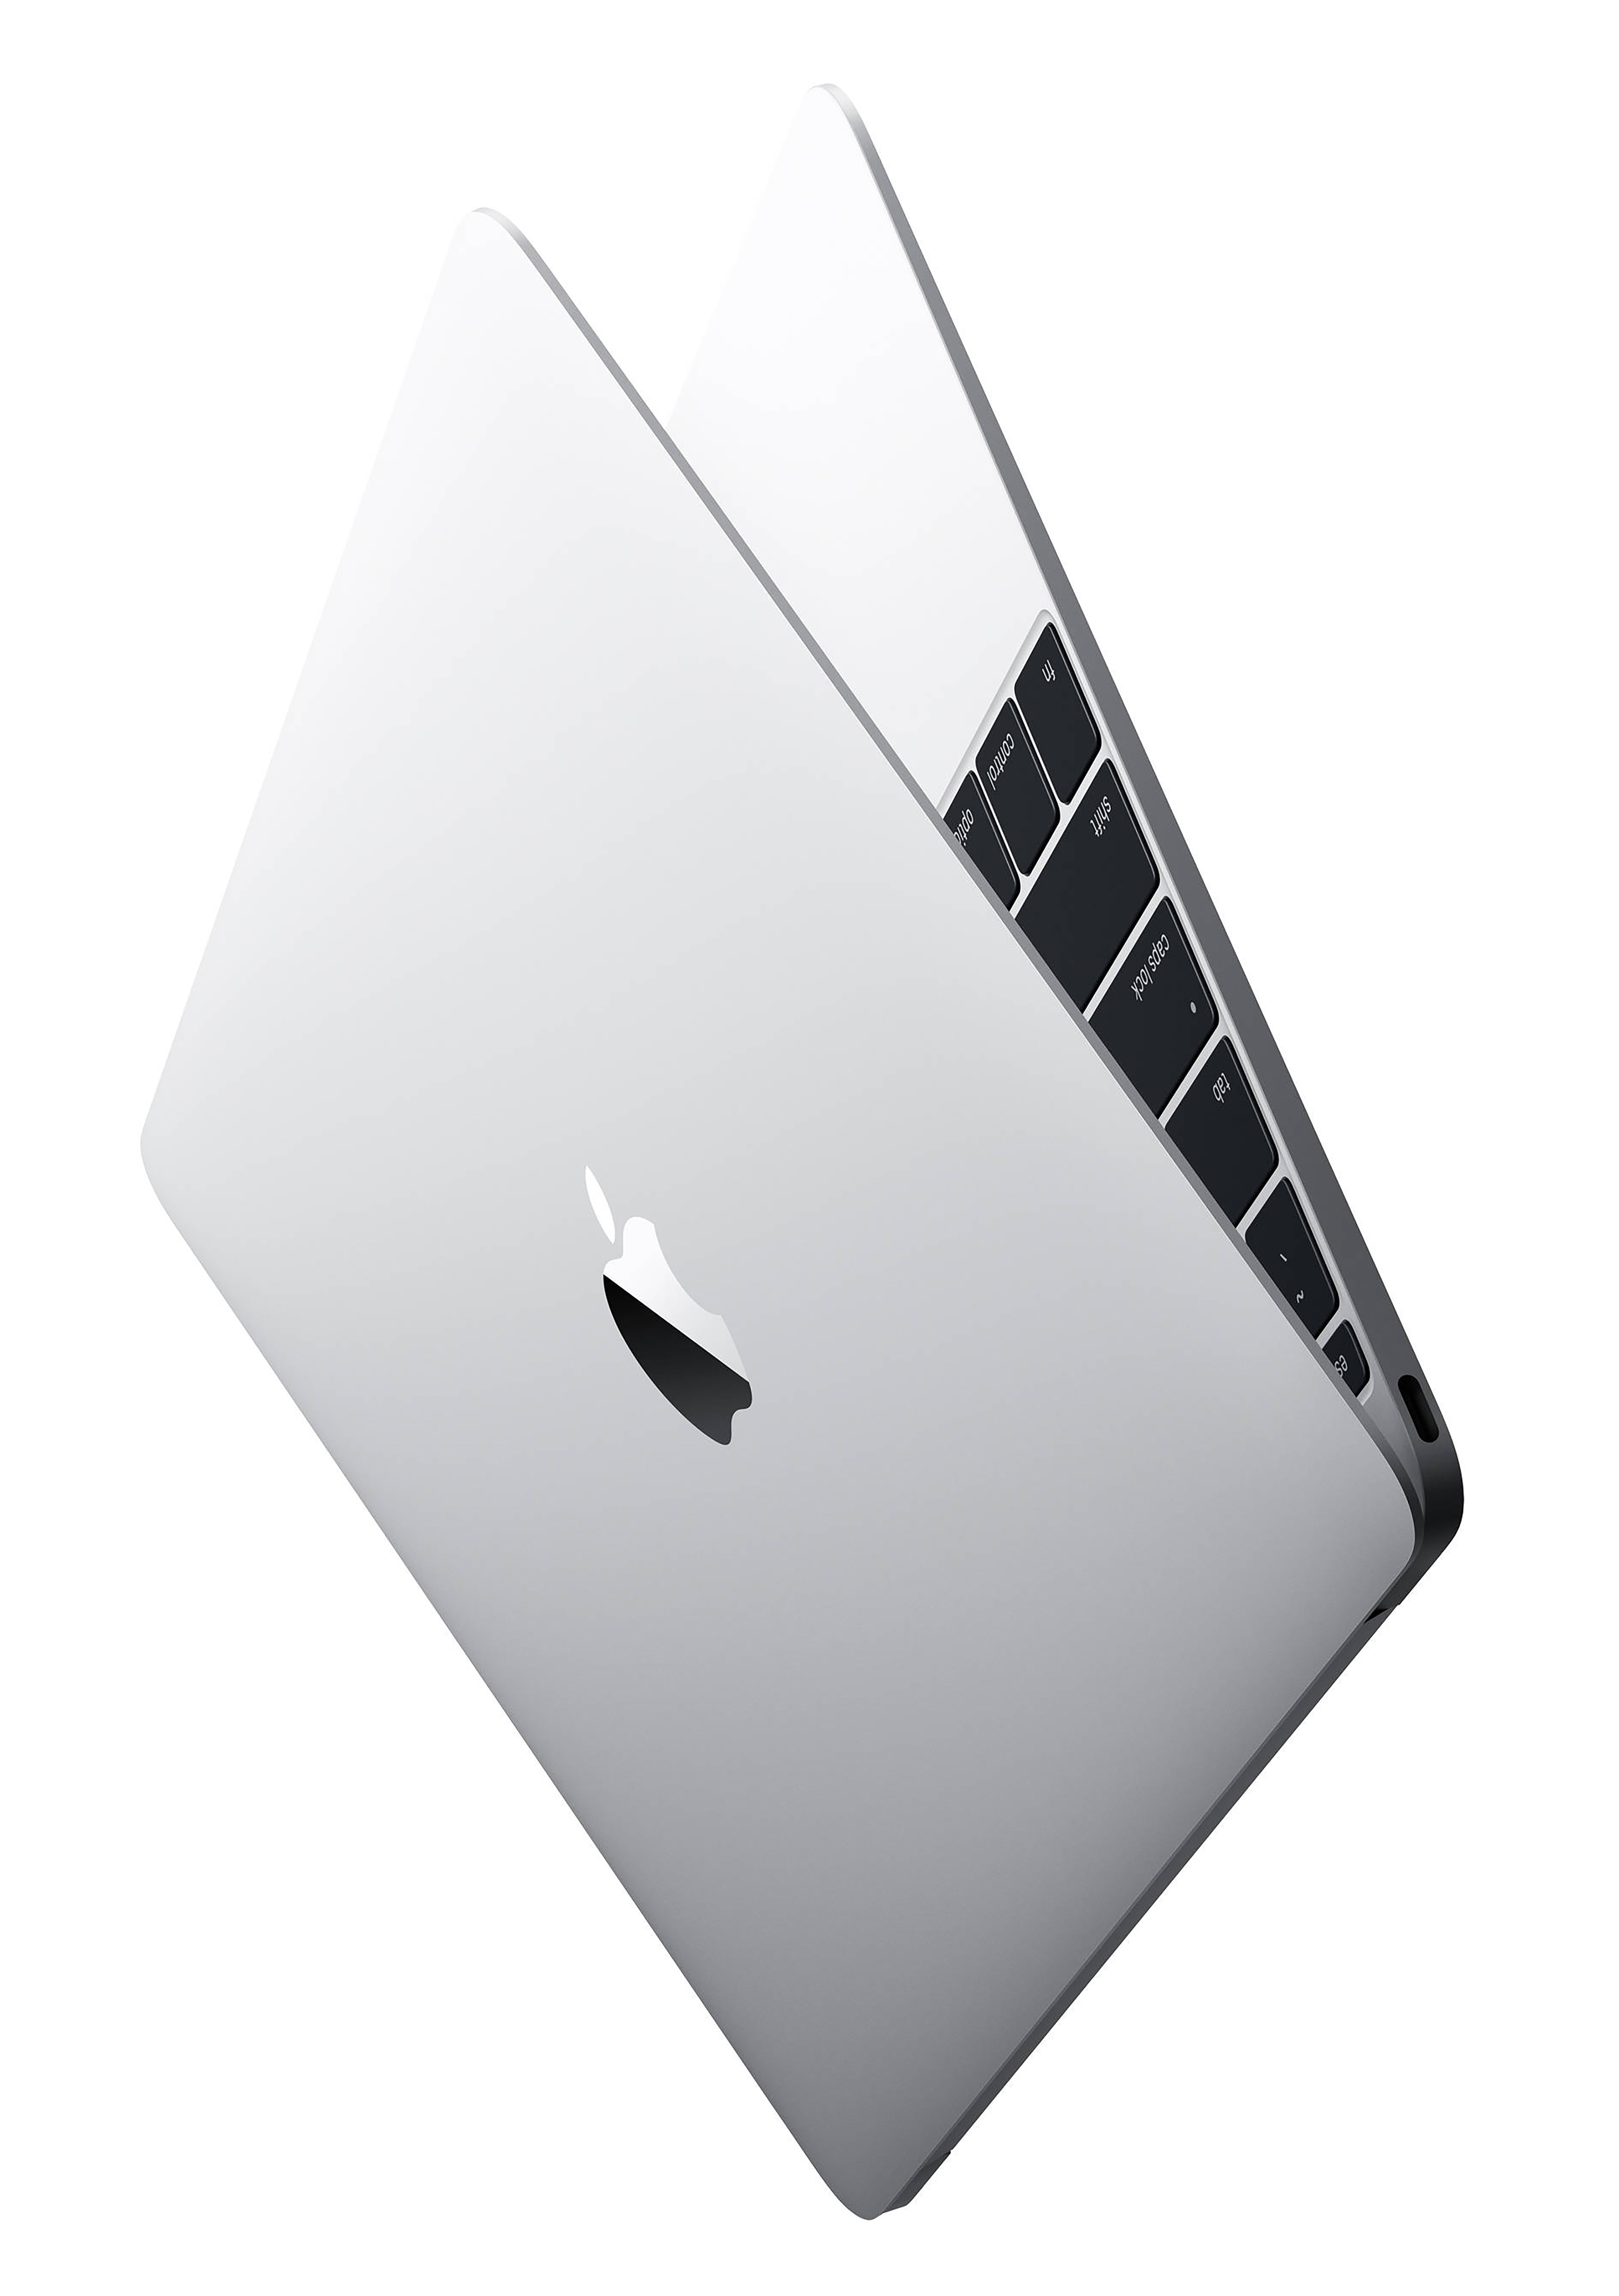 Apple Macbook (MLHA2LL A) Intel Core m3 256GB Silver (Early 2016) (Certified Refurbished) by Apple